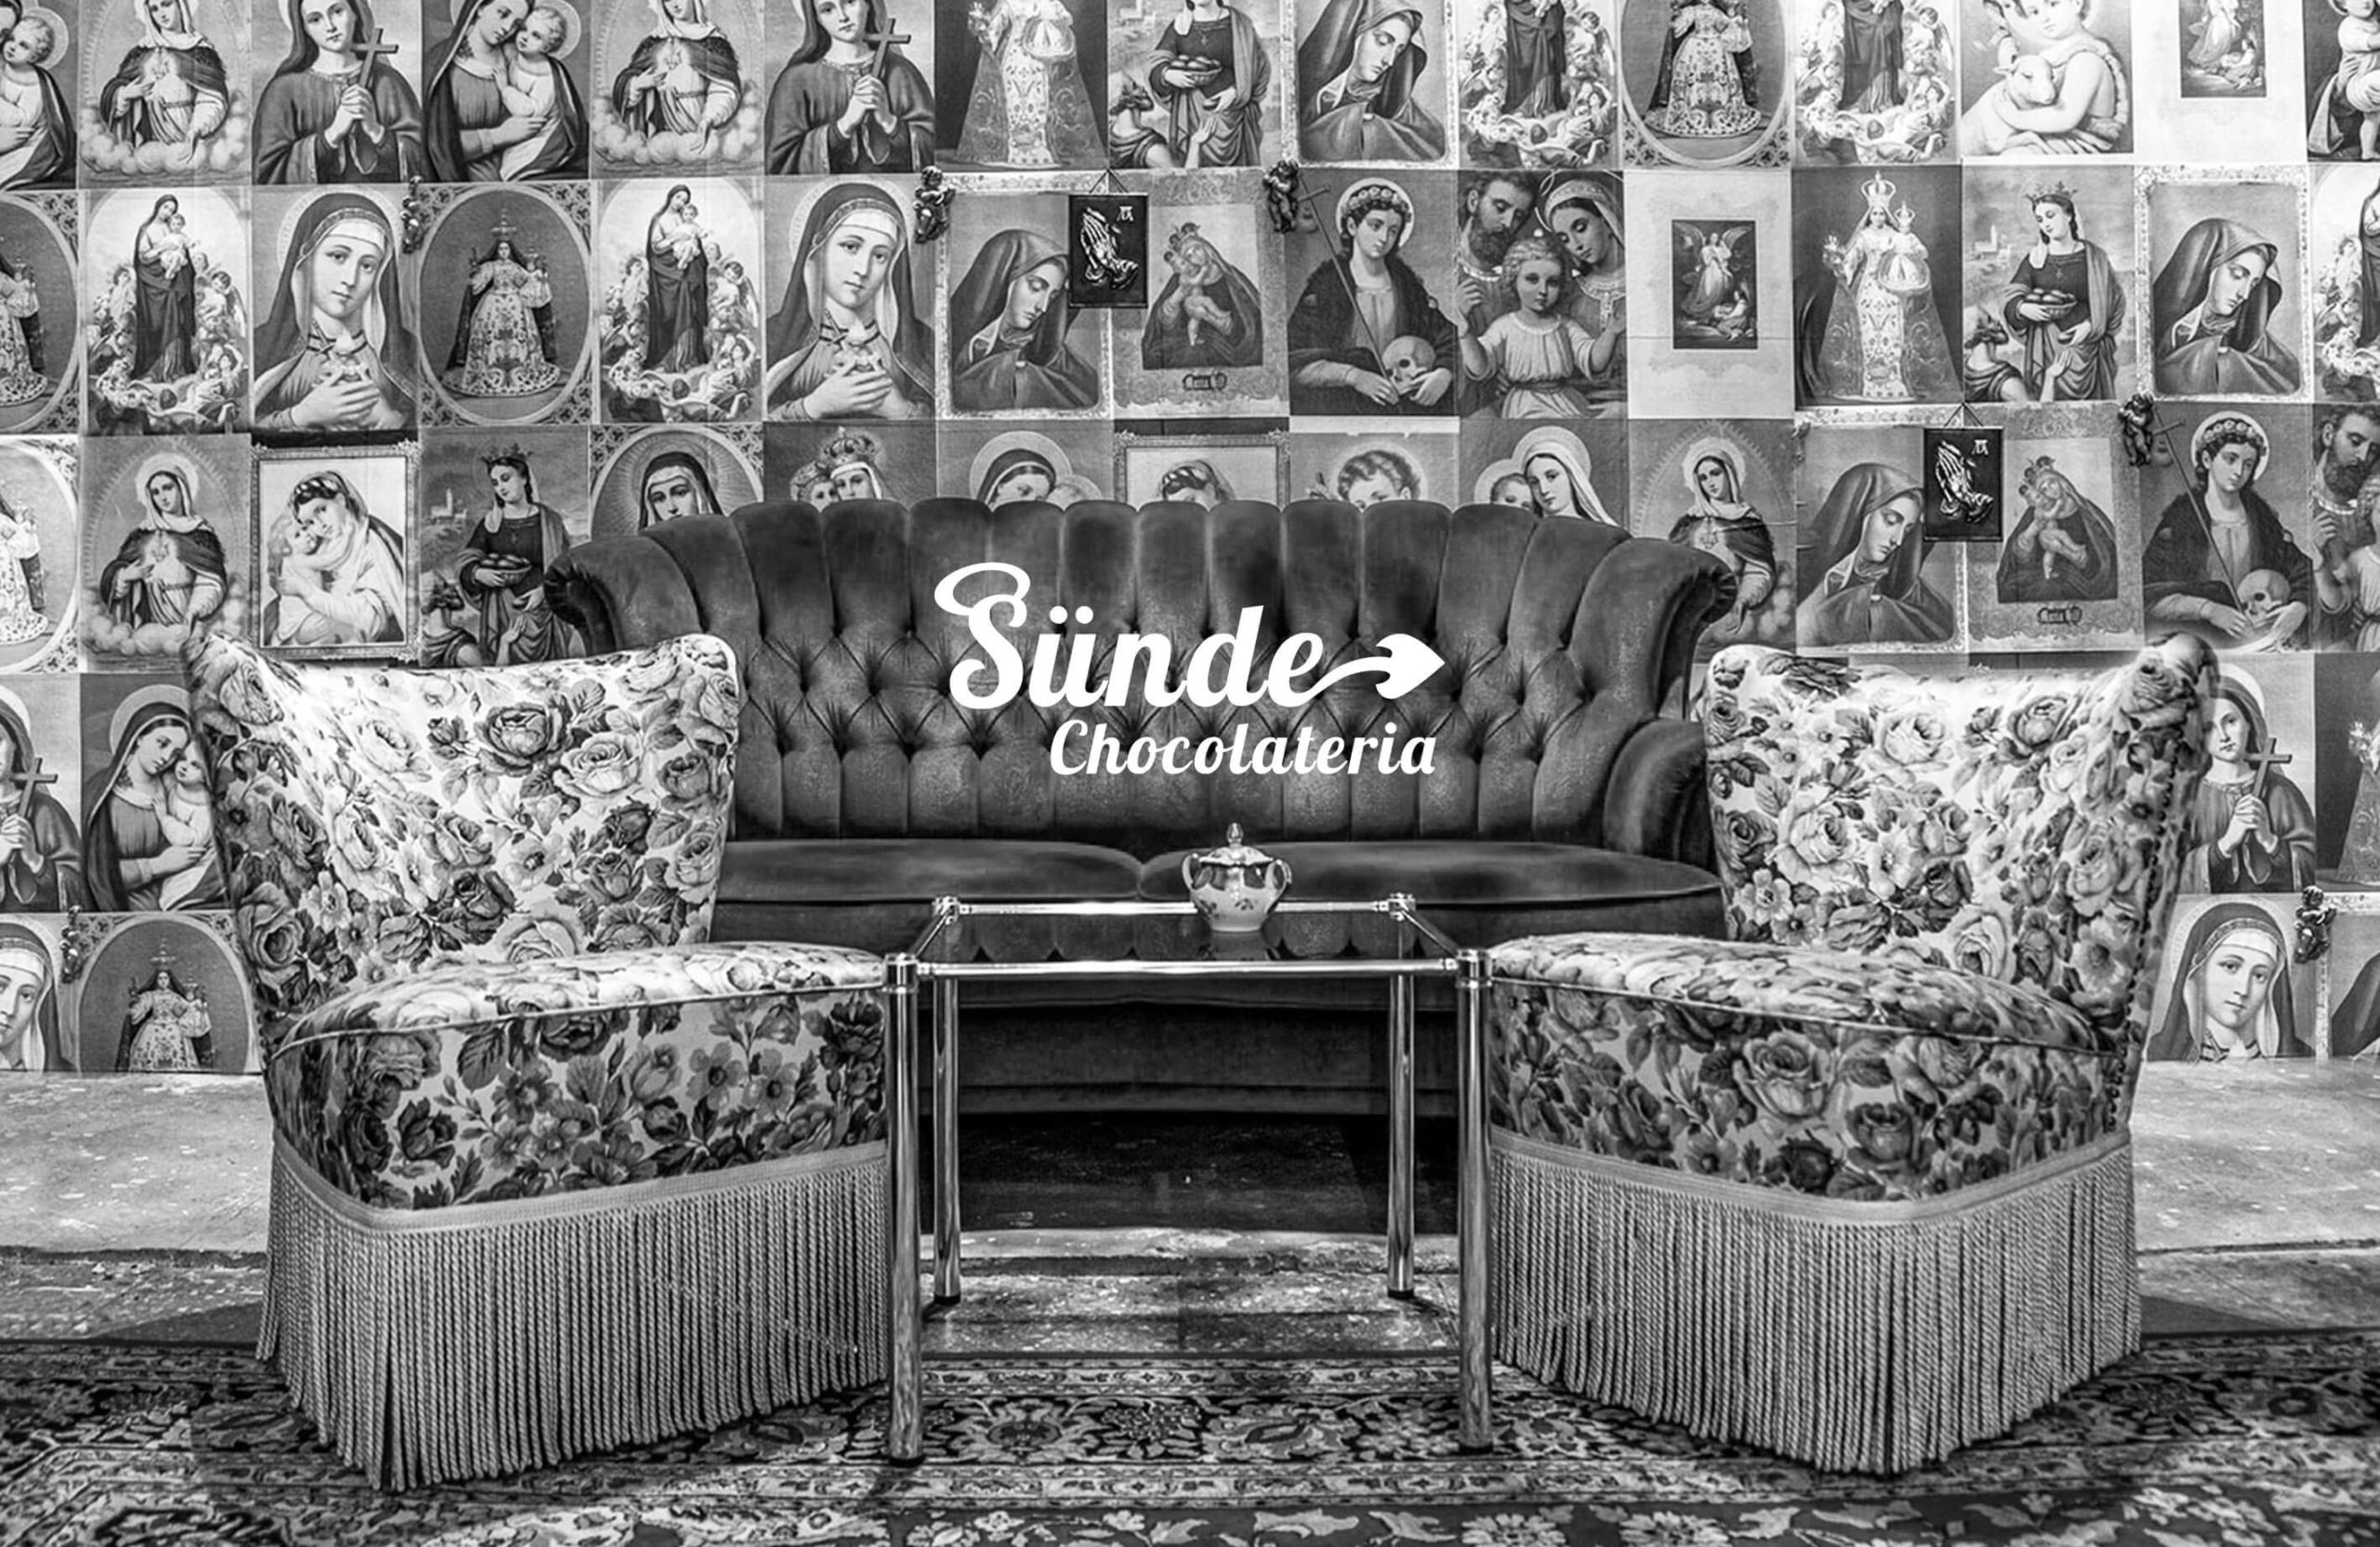 Chocolateria Sünde